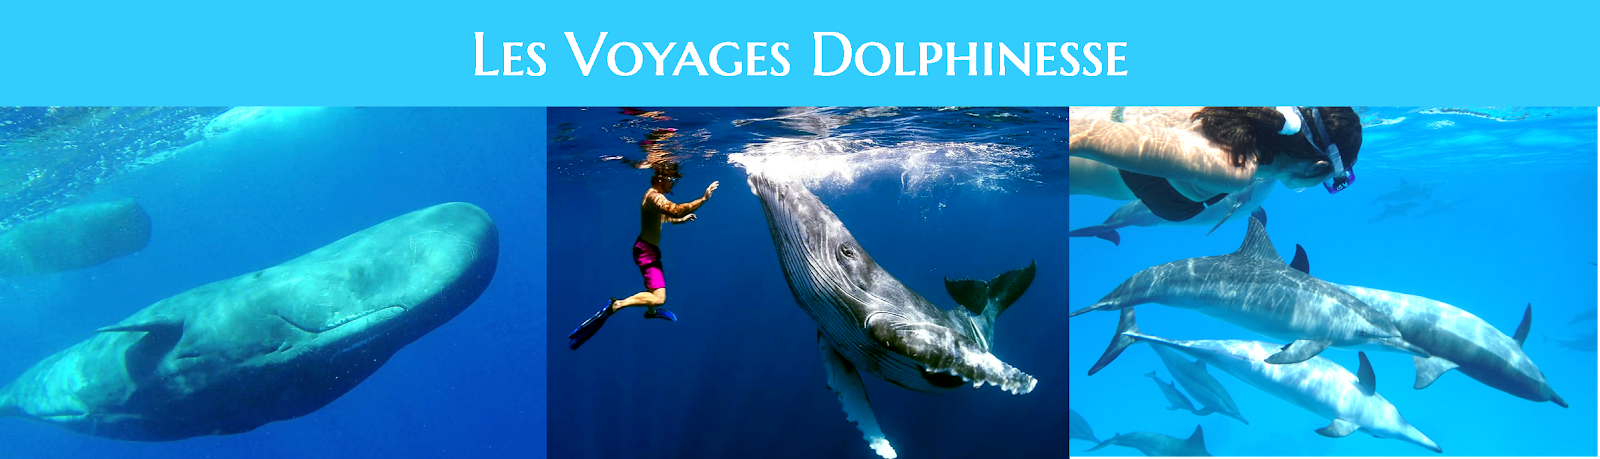 http://www.dolphinesse.net/p/voyages-dolphinesse.html